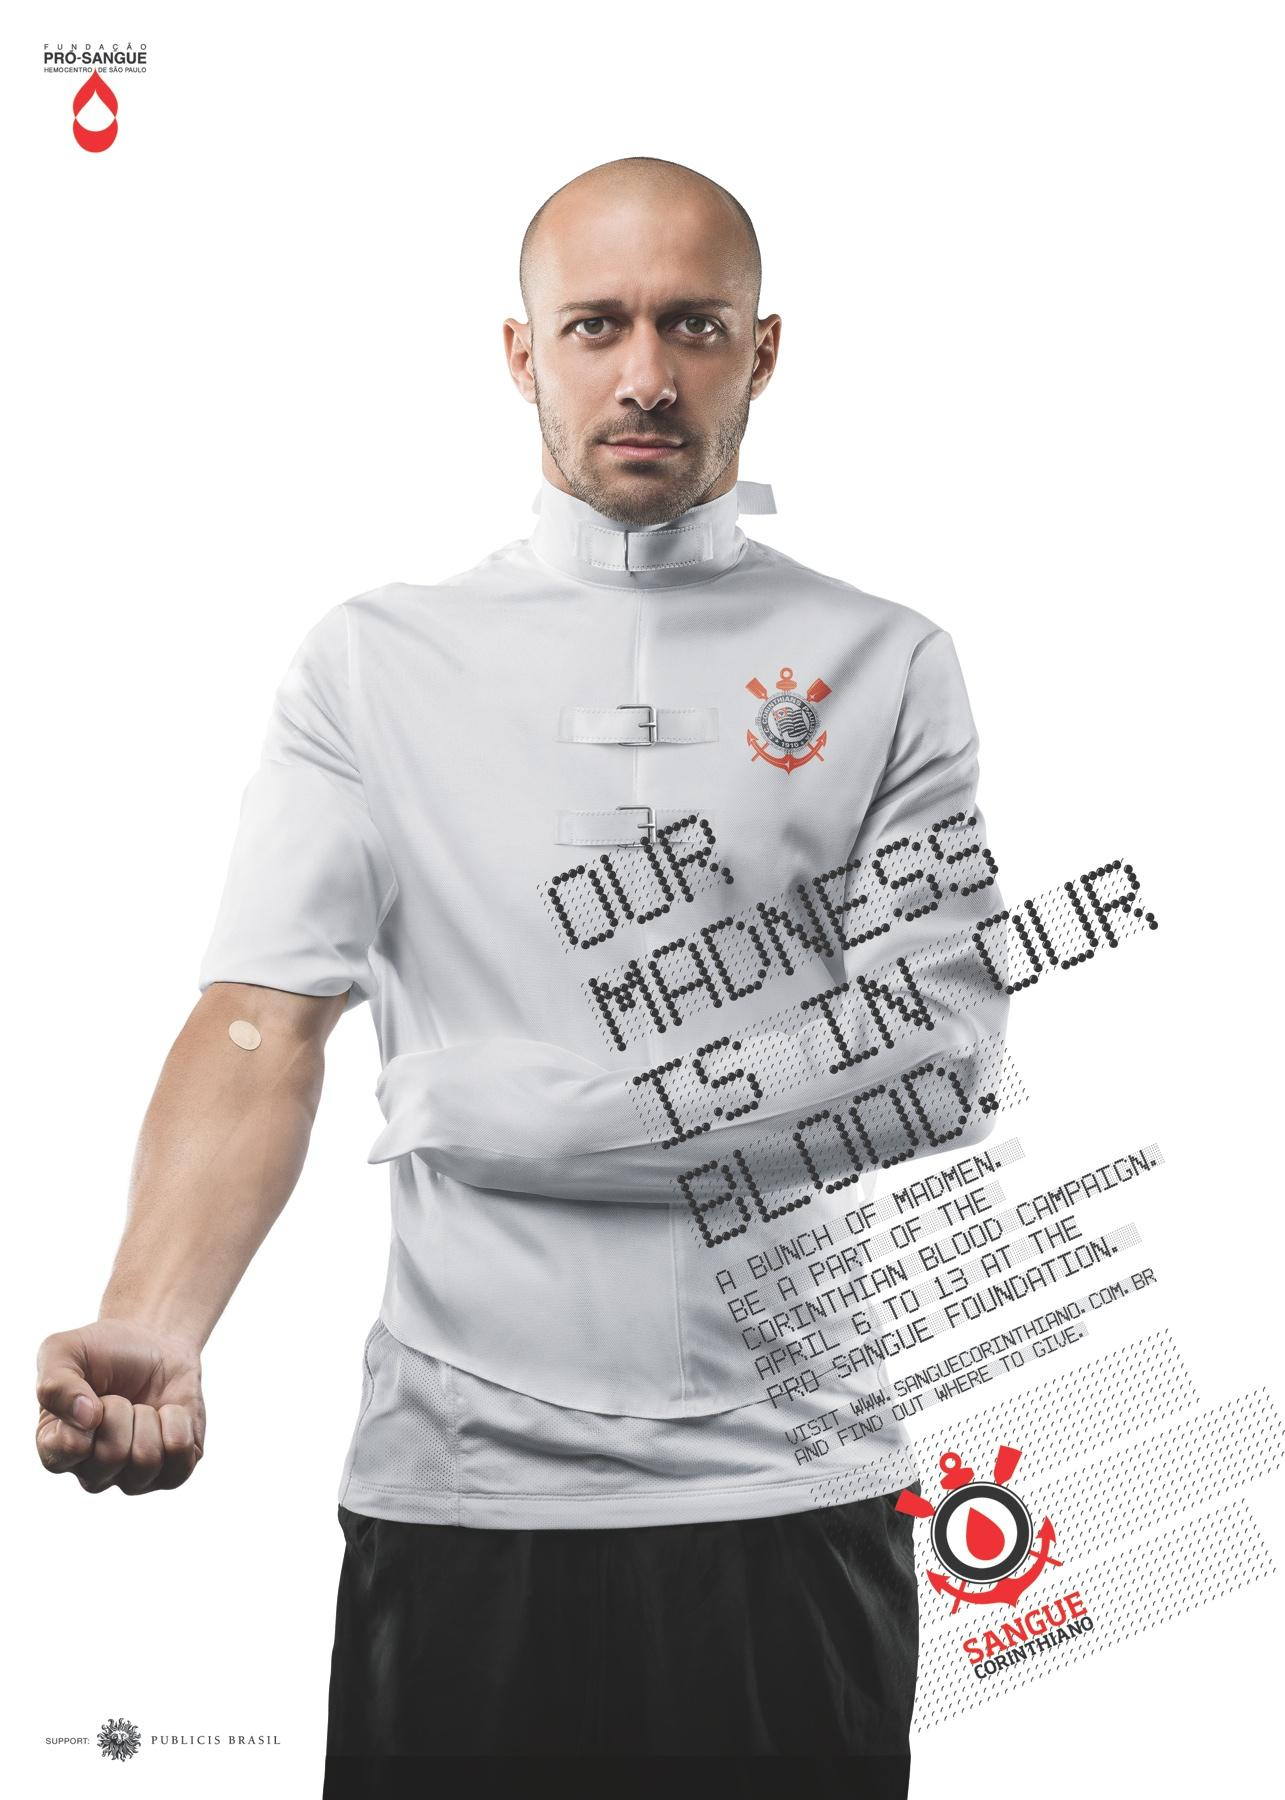 Sangue Corinthiano Print Ad -  Our madness is in our blood, Alessandro